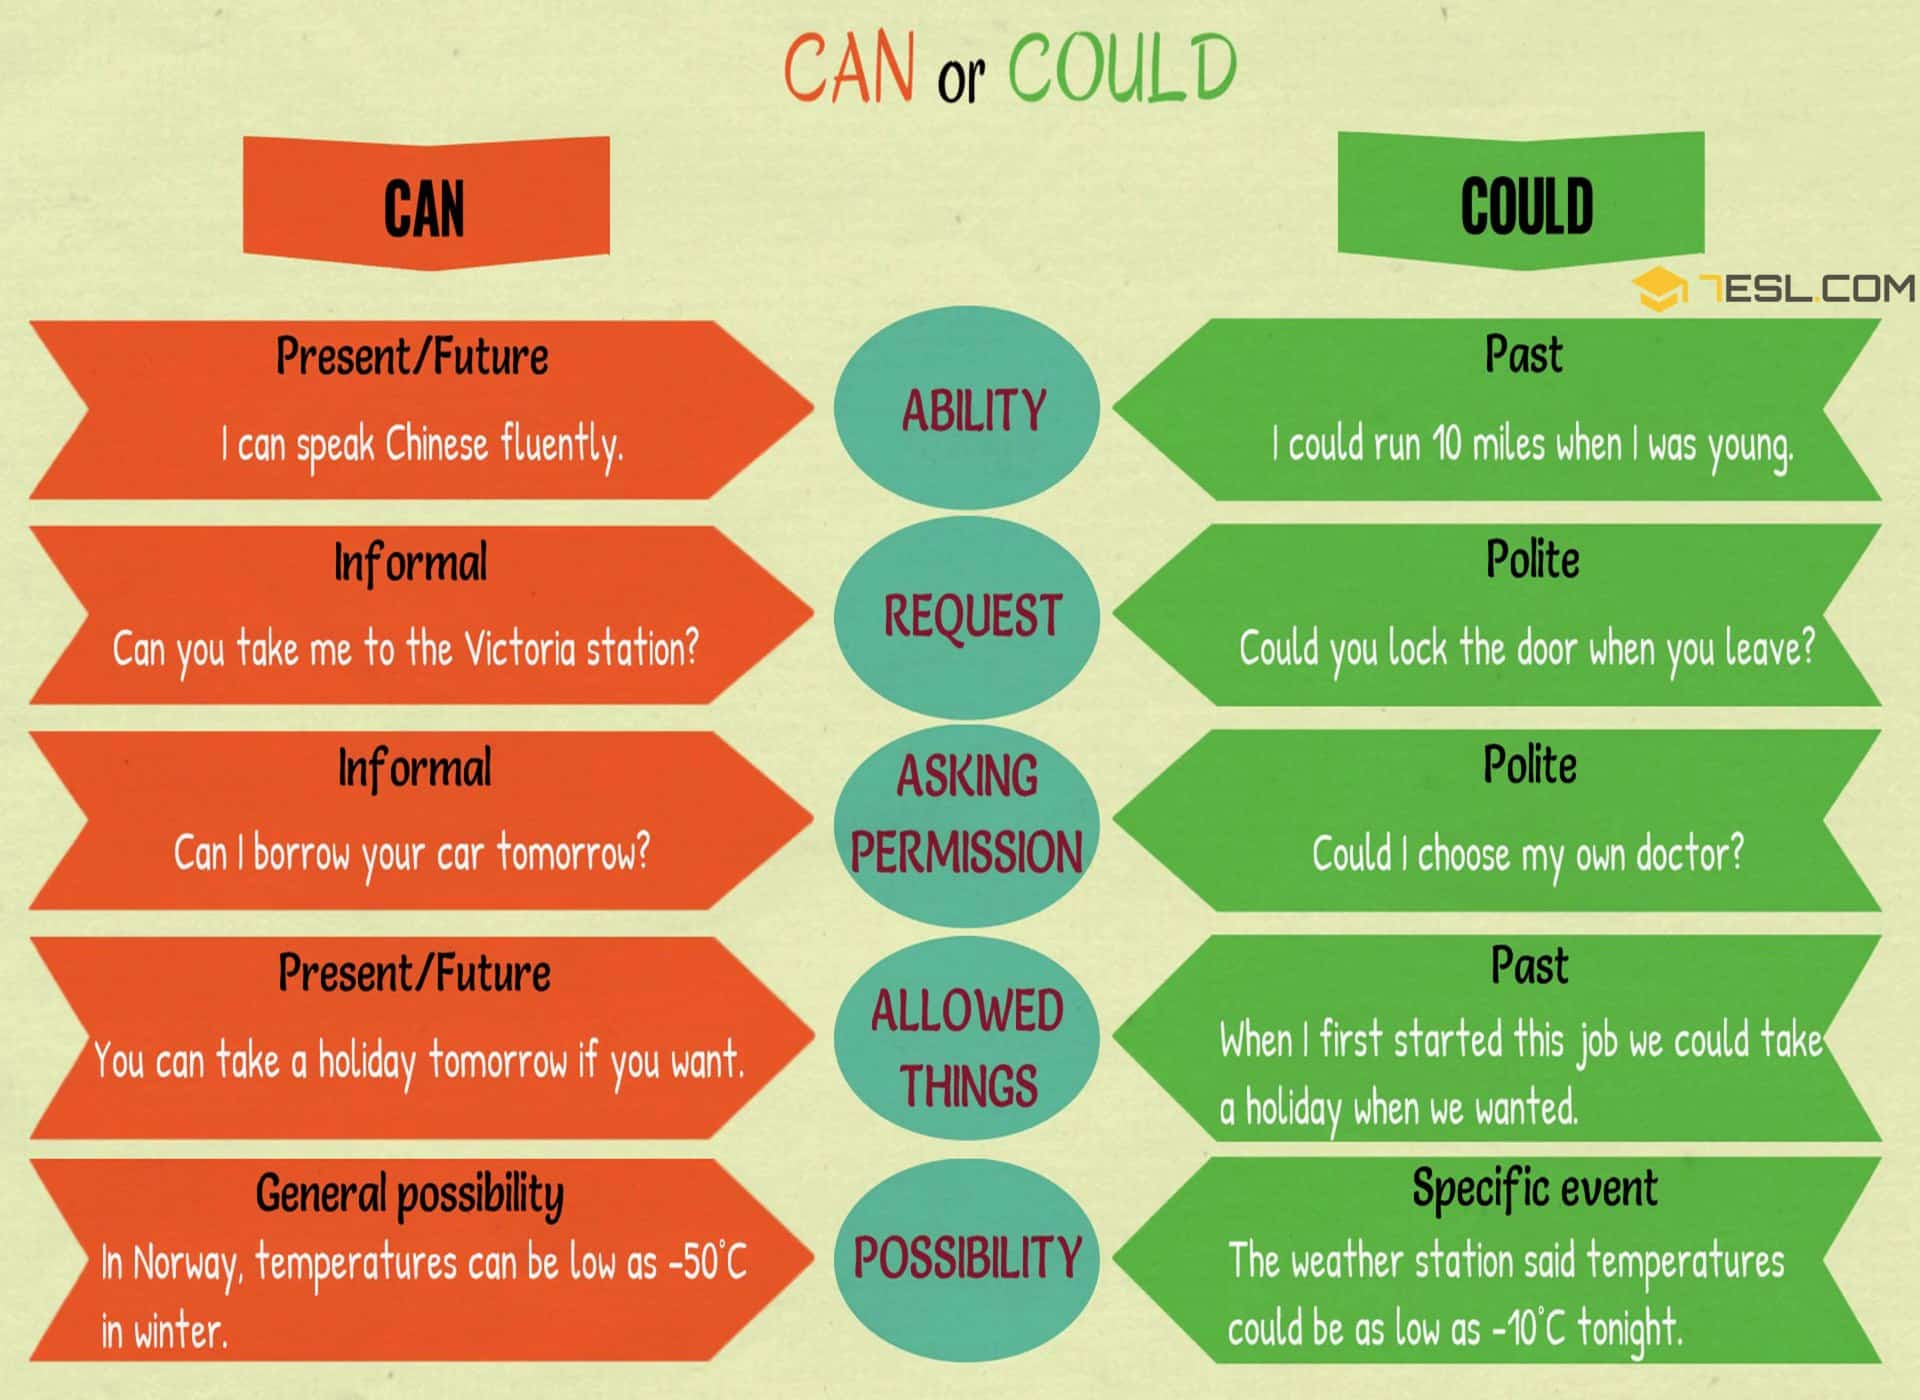 CAN or COULD | The Difference Between CAN and COULD